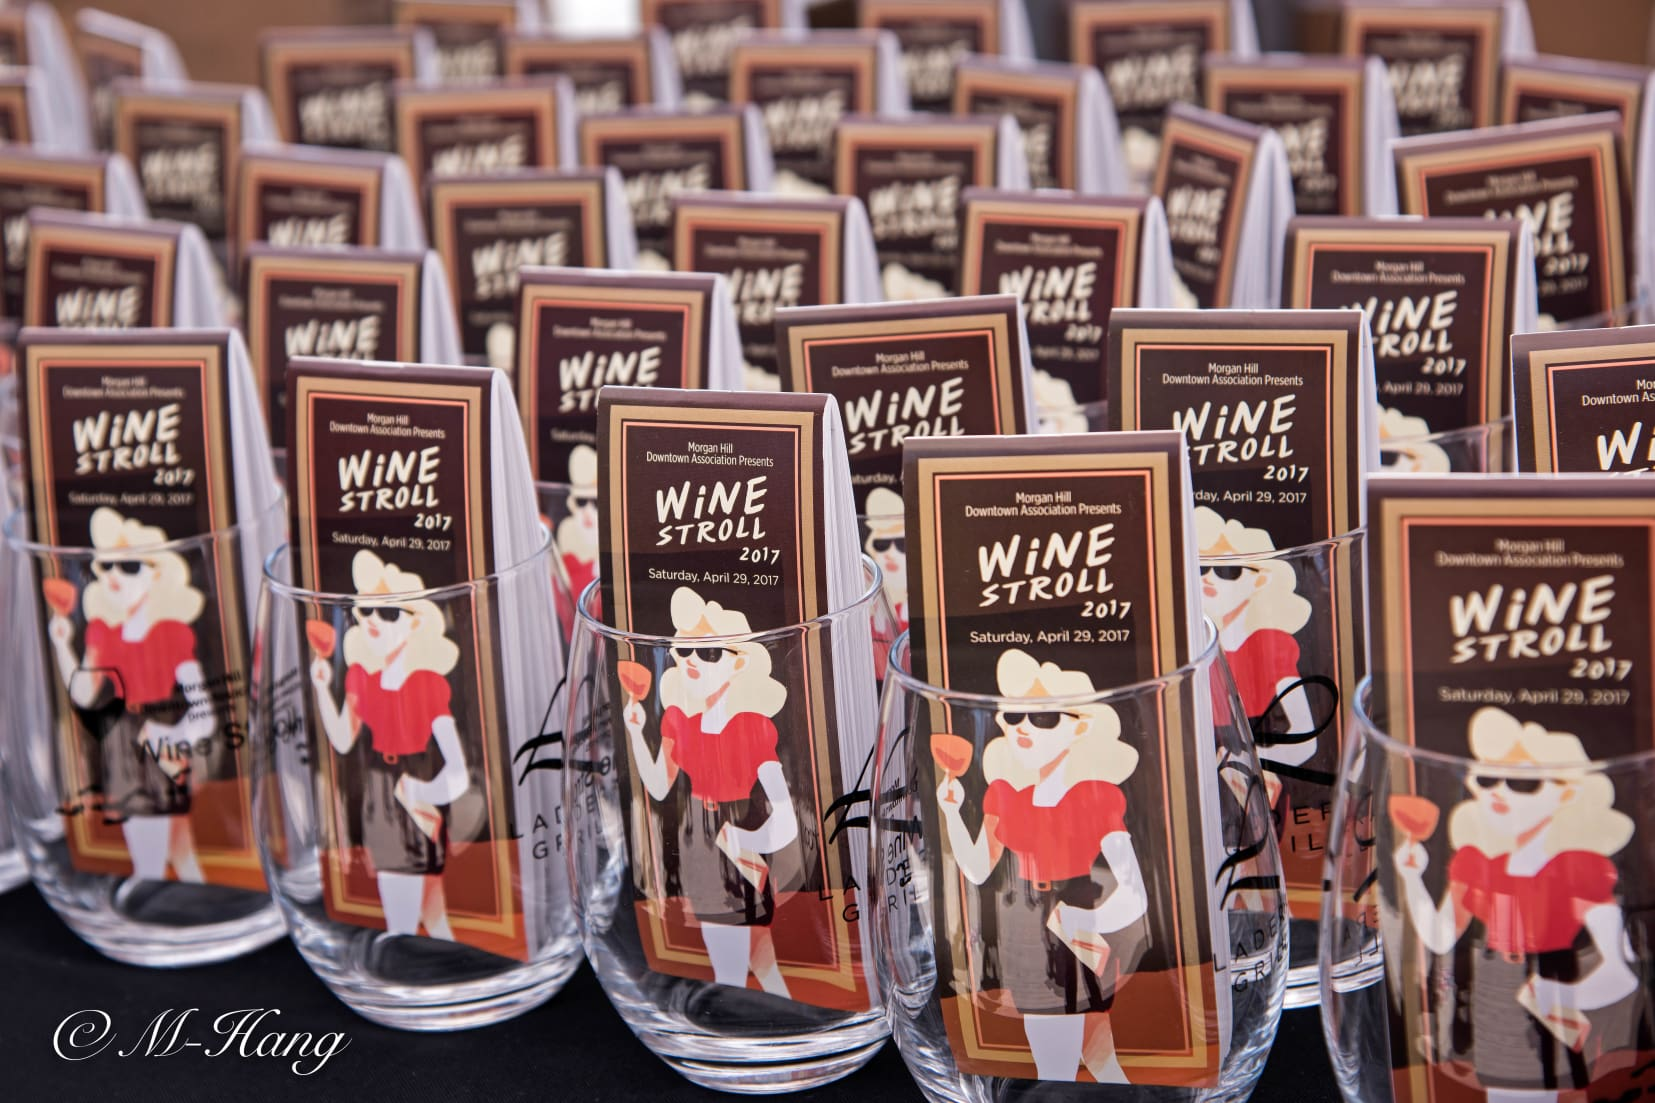 wine-glass-and-booklet-w1655-1.jpg